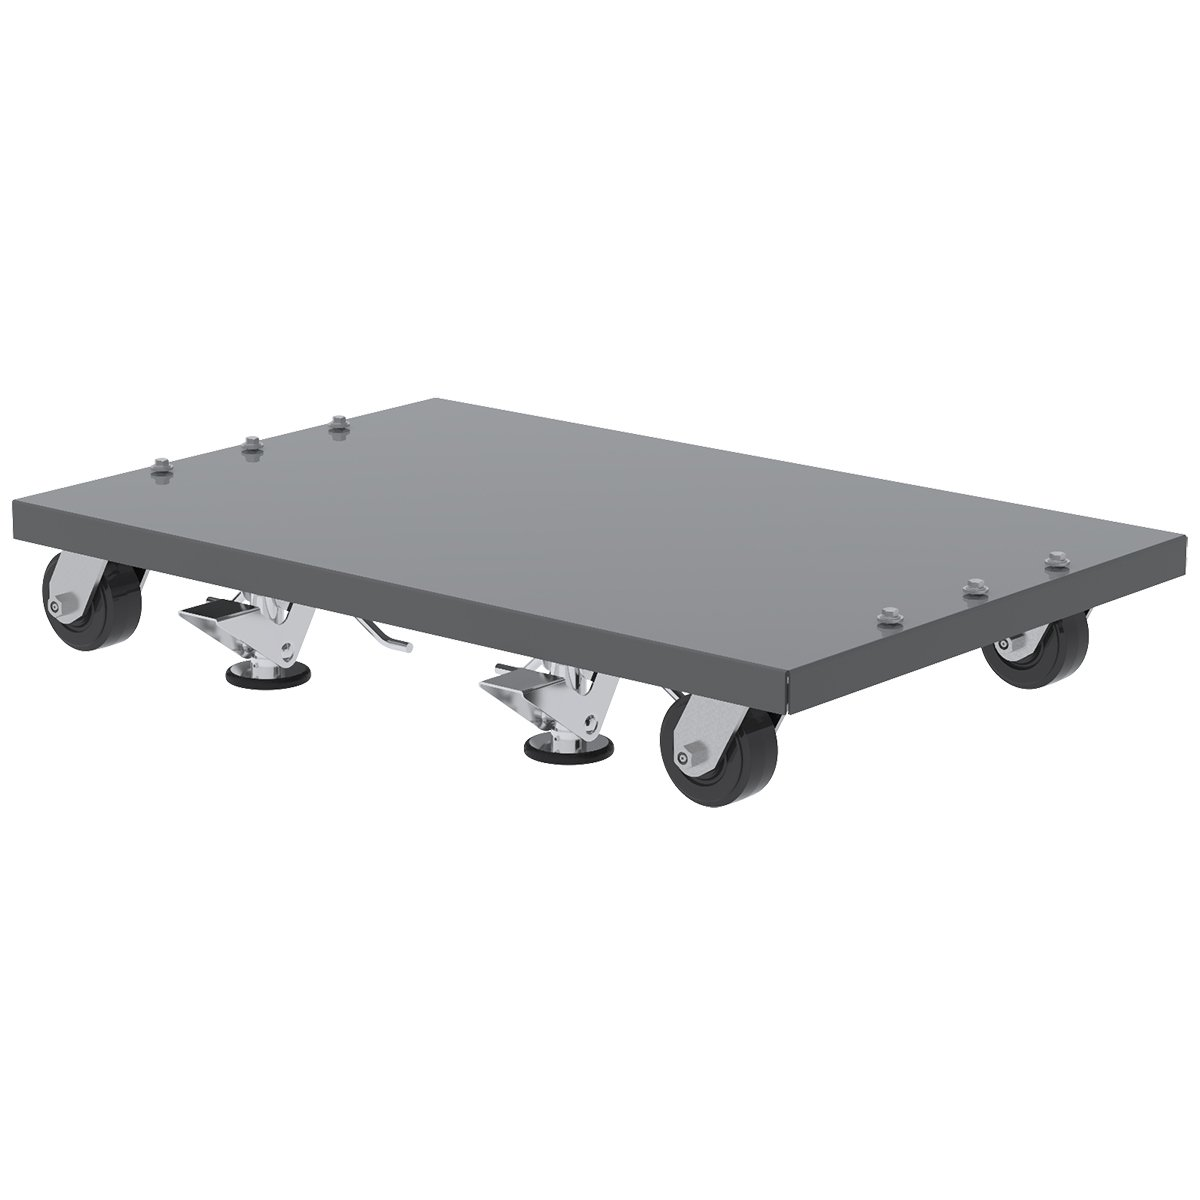 Akro-Mils 30661DOLLYGY Powder Coated Steel Dolly, Grey